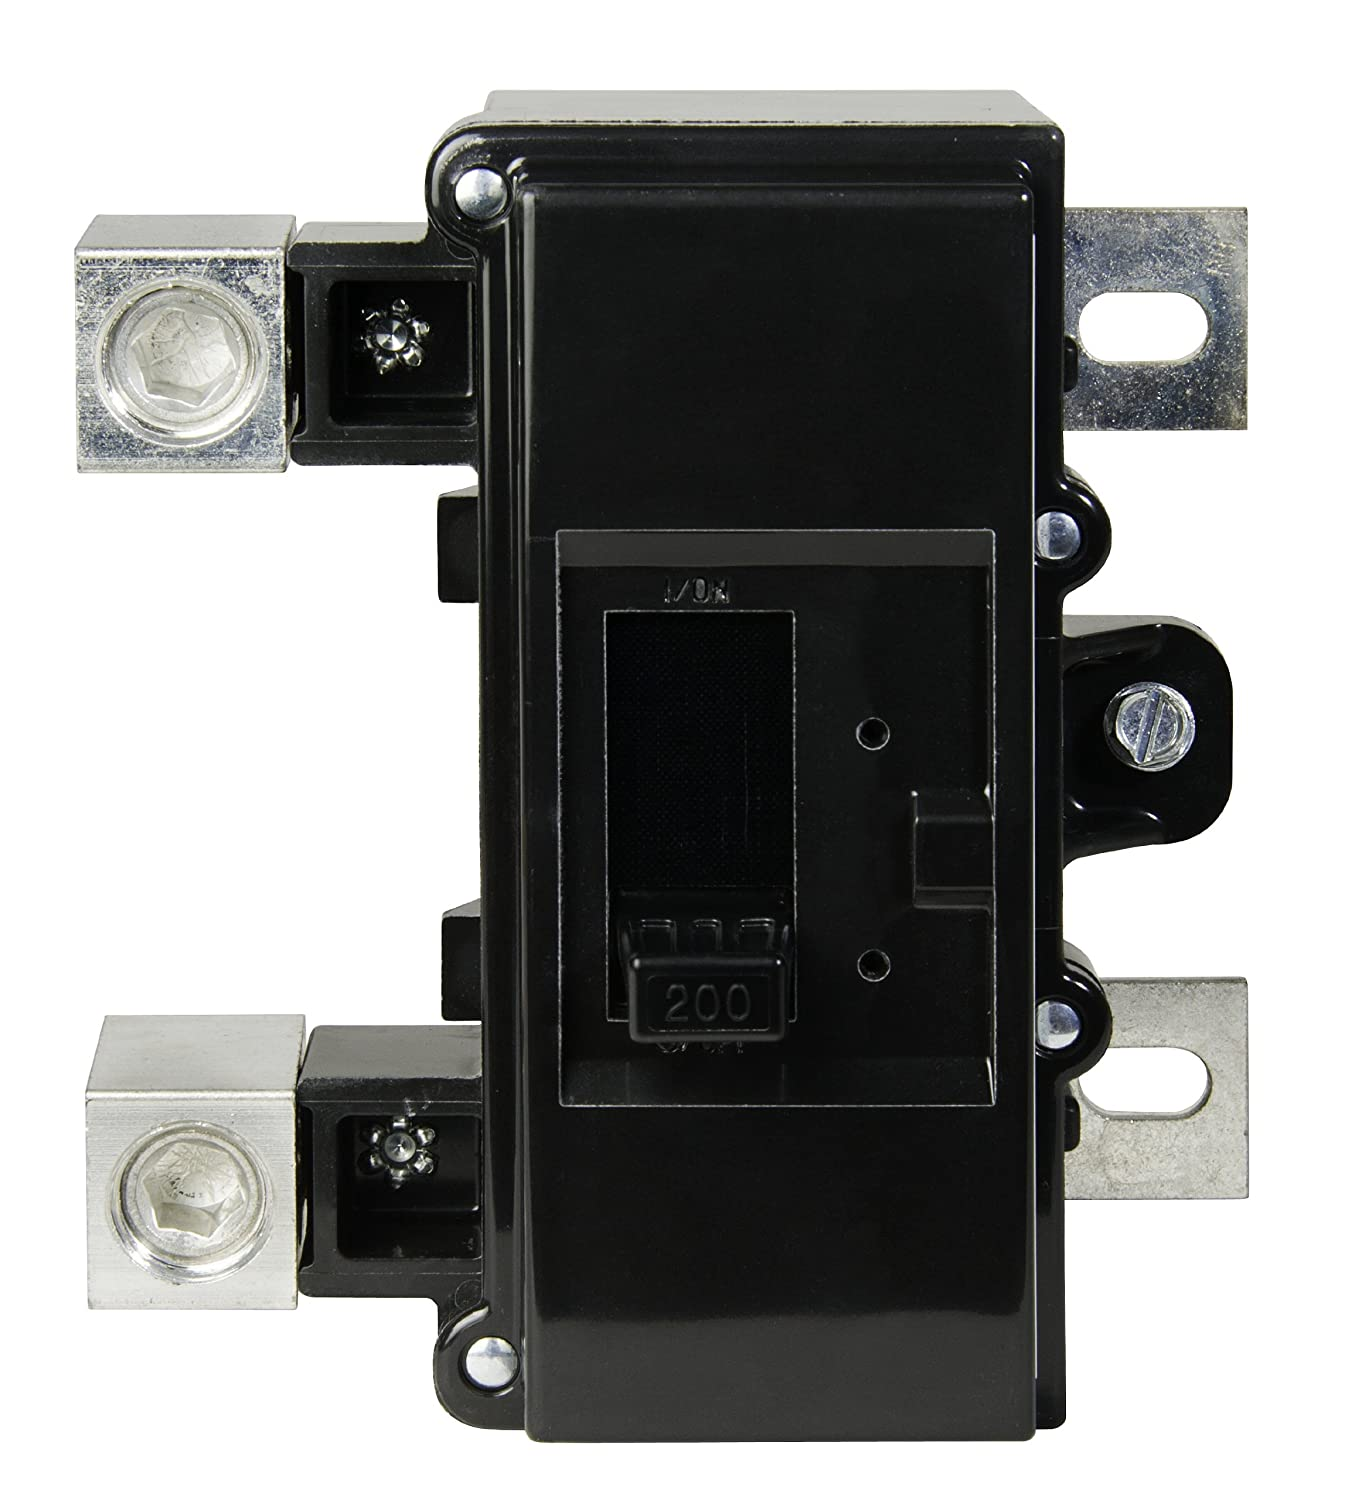 Square D By Schneider Electric Qom2200vh Qo 200 Amp 22k Air Qom2 Circuit Breaker Types Video Different Of Breakers Ehow Frame Size Main For And Homeline Load Centers Panels